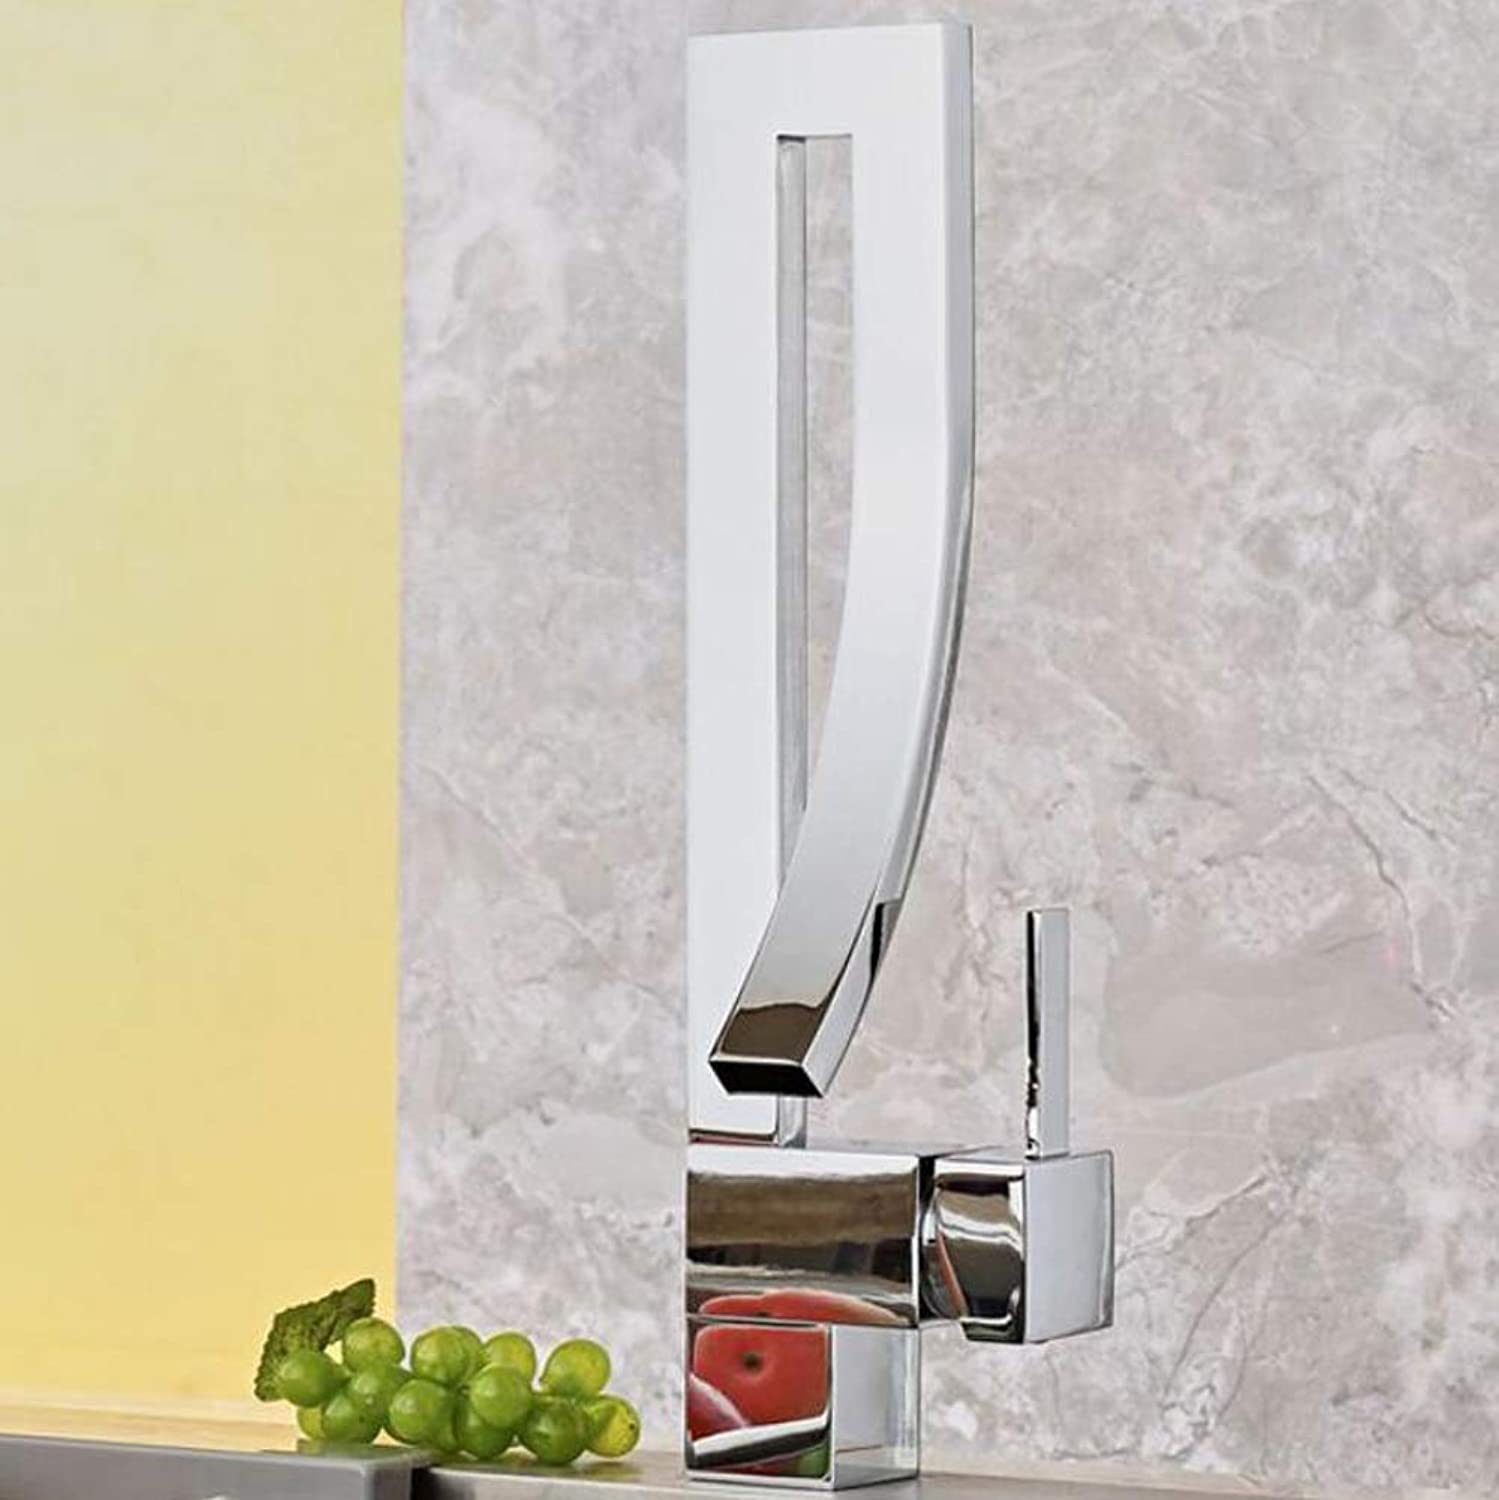 Wide Mouth Waterfall Washroom Single Lever Basin Mixer Tap Brushed Nickel plating Chrome Finish Bathroom Sink Hot Cold Taps Counter Top Basin,SilverFaucet